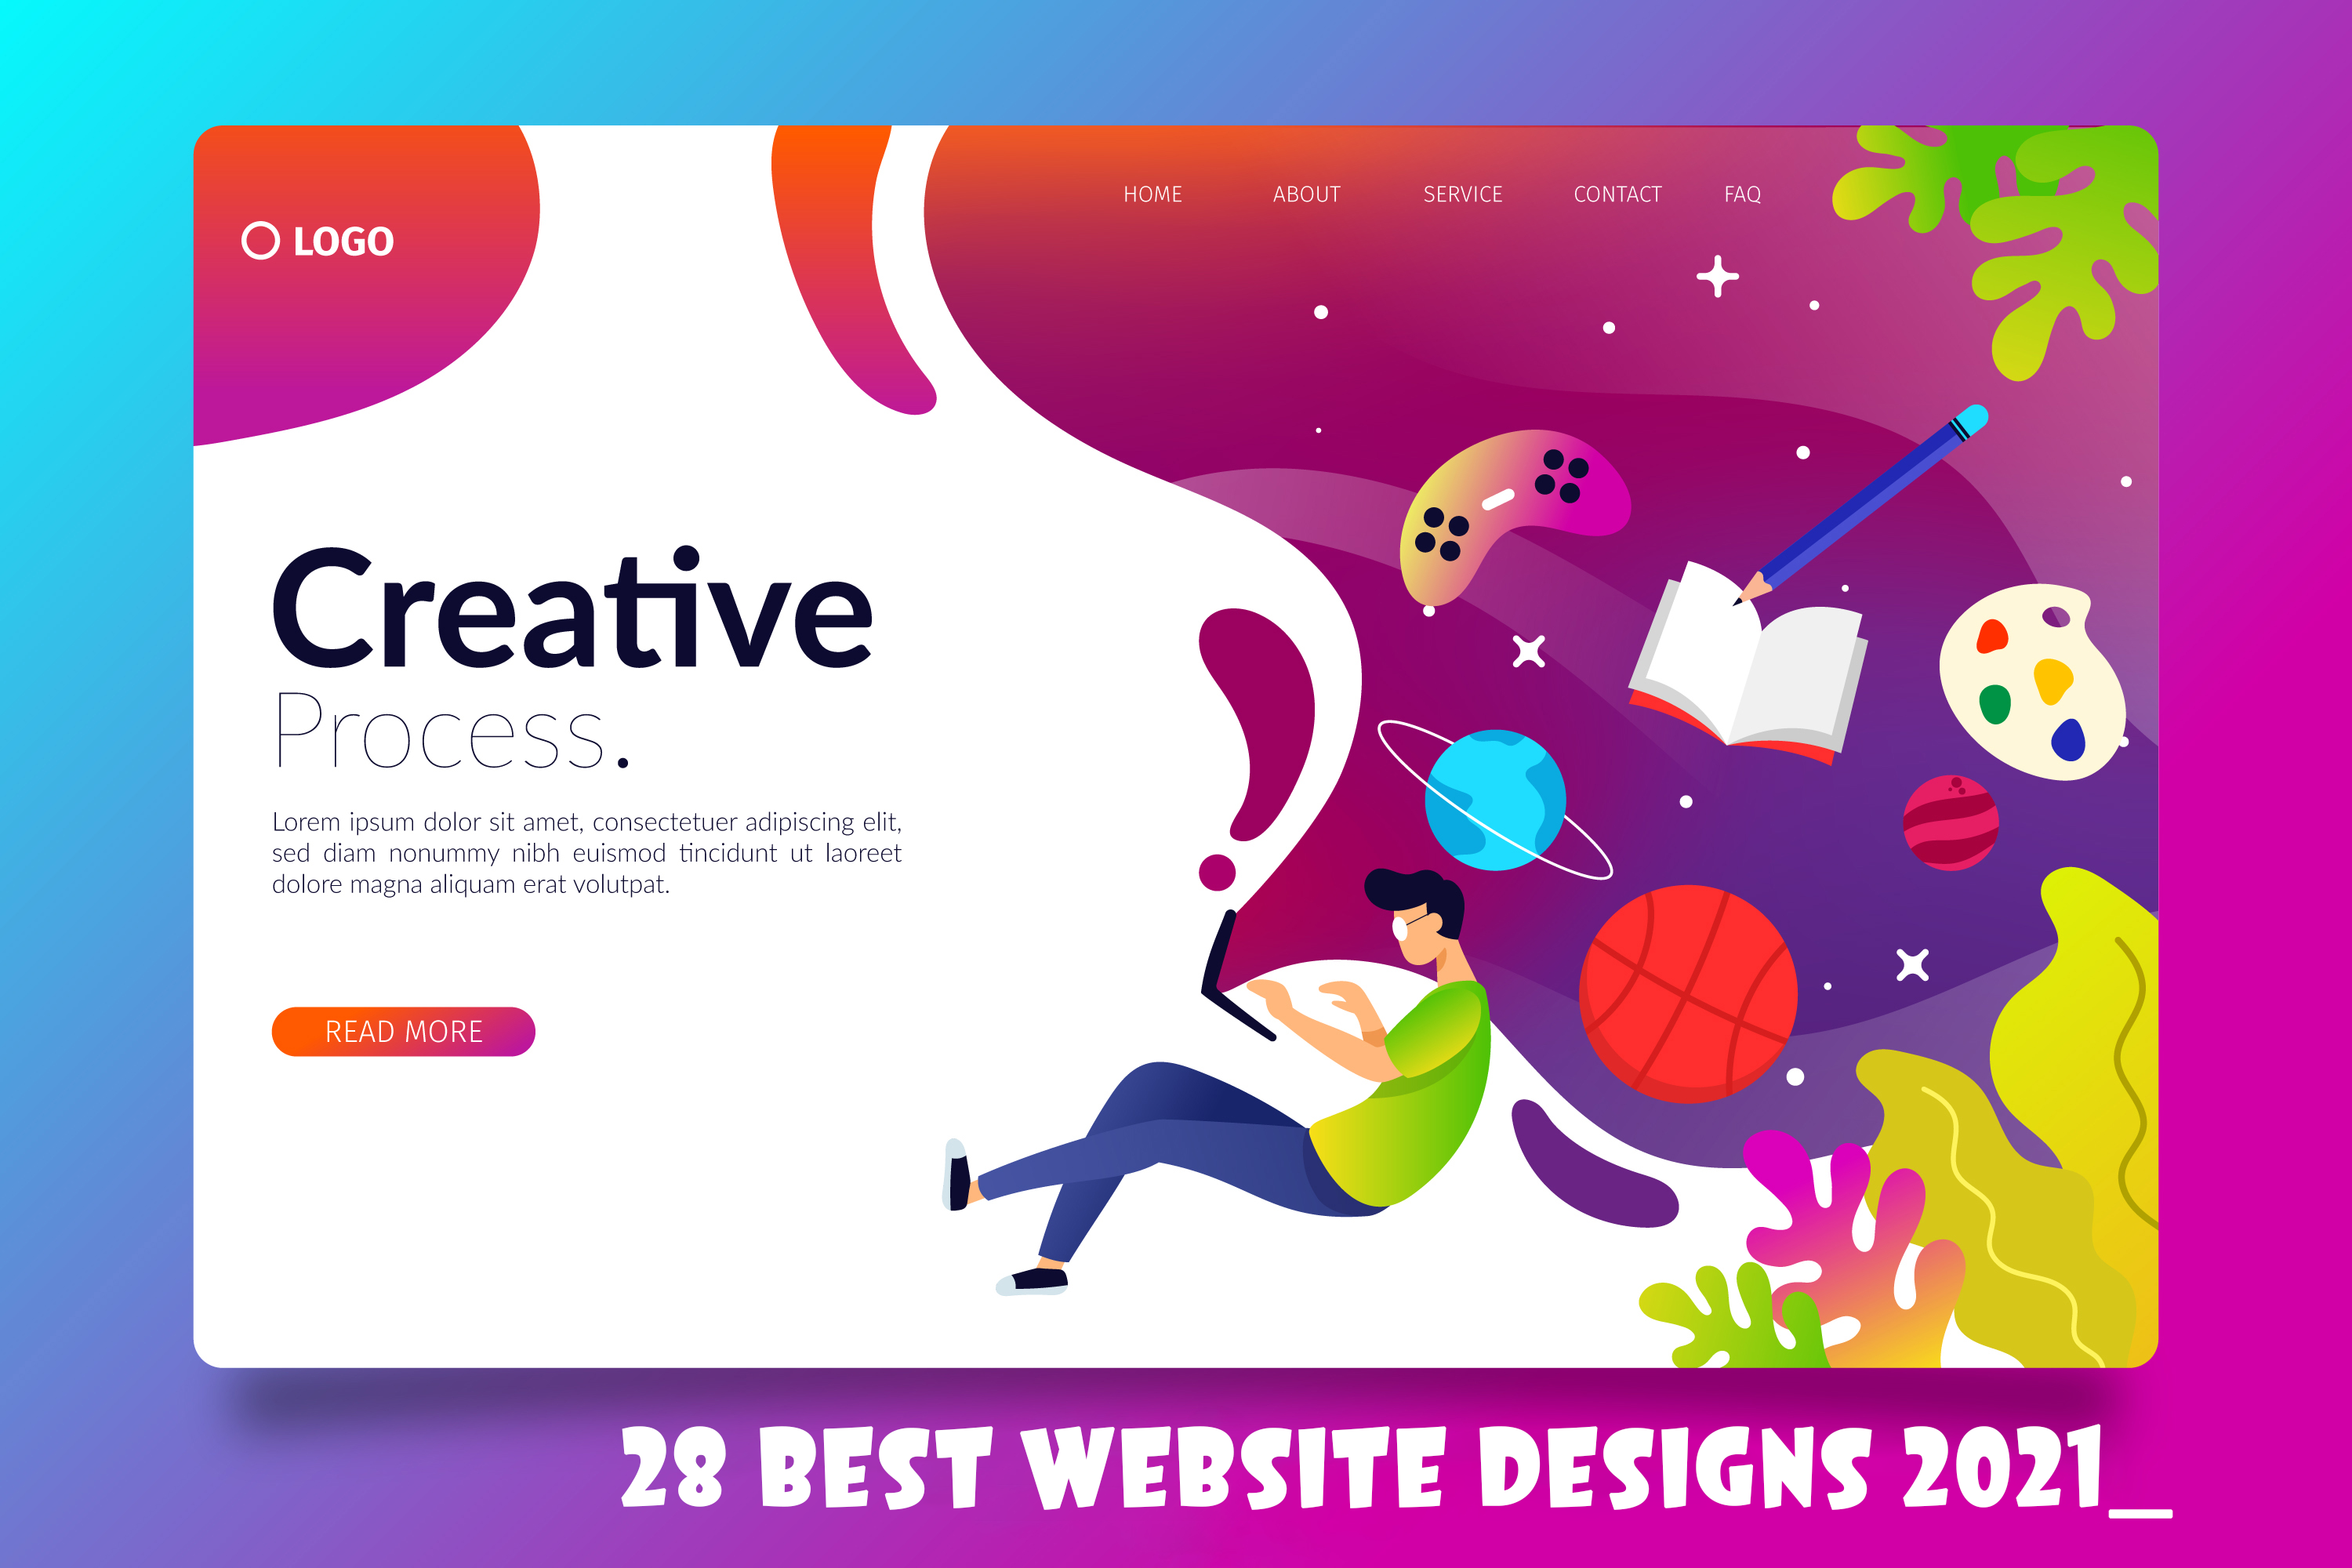 Web Design, The Next Large Thing!